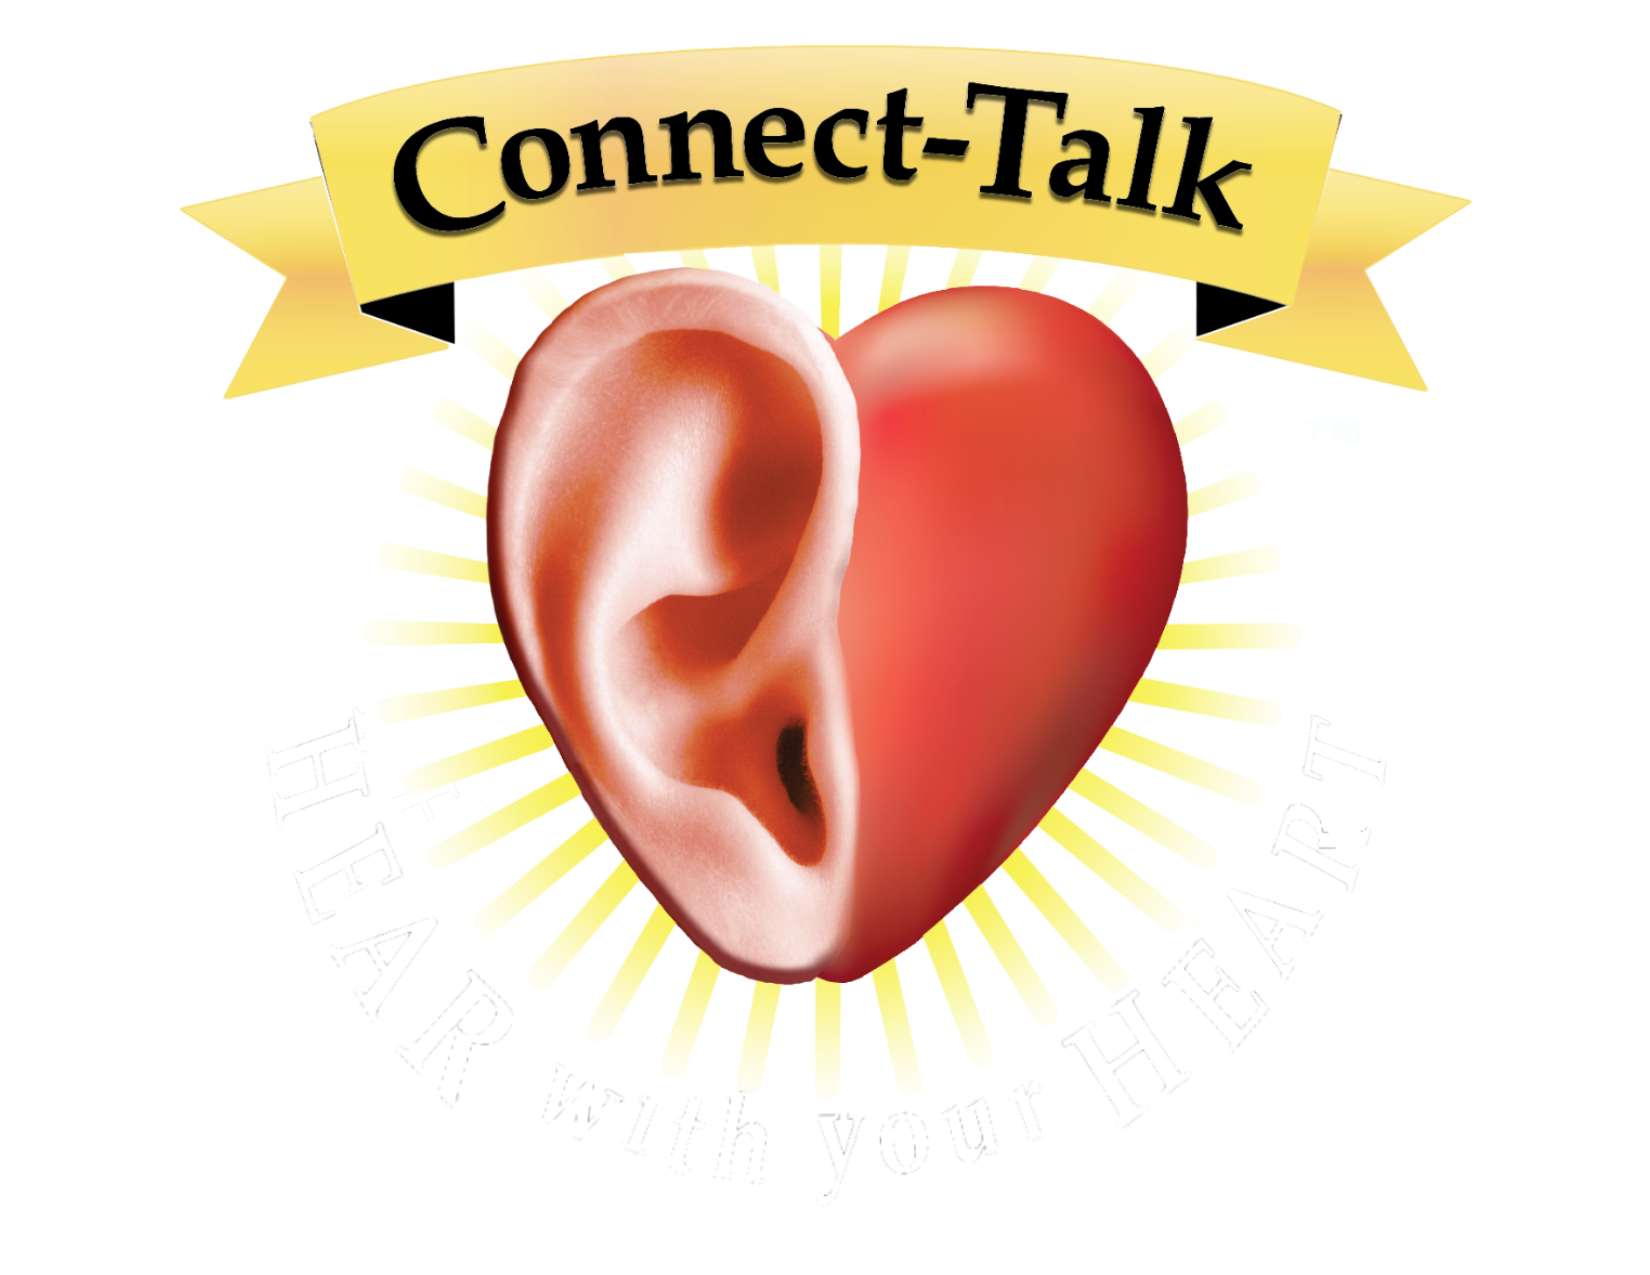 Connect-Talk